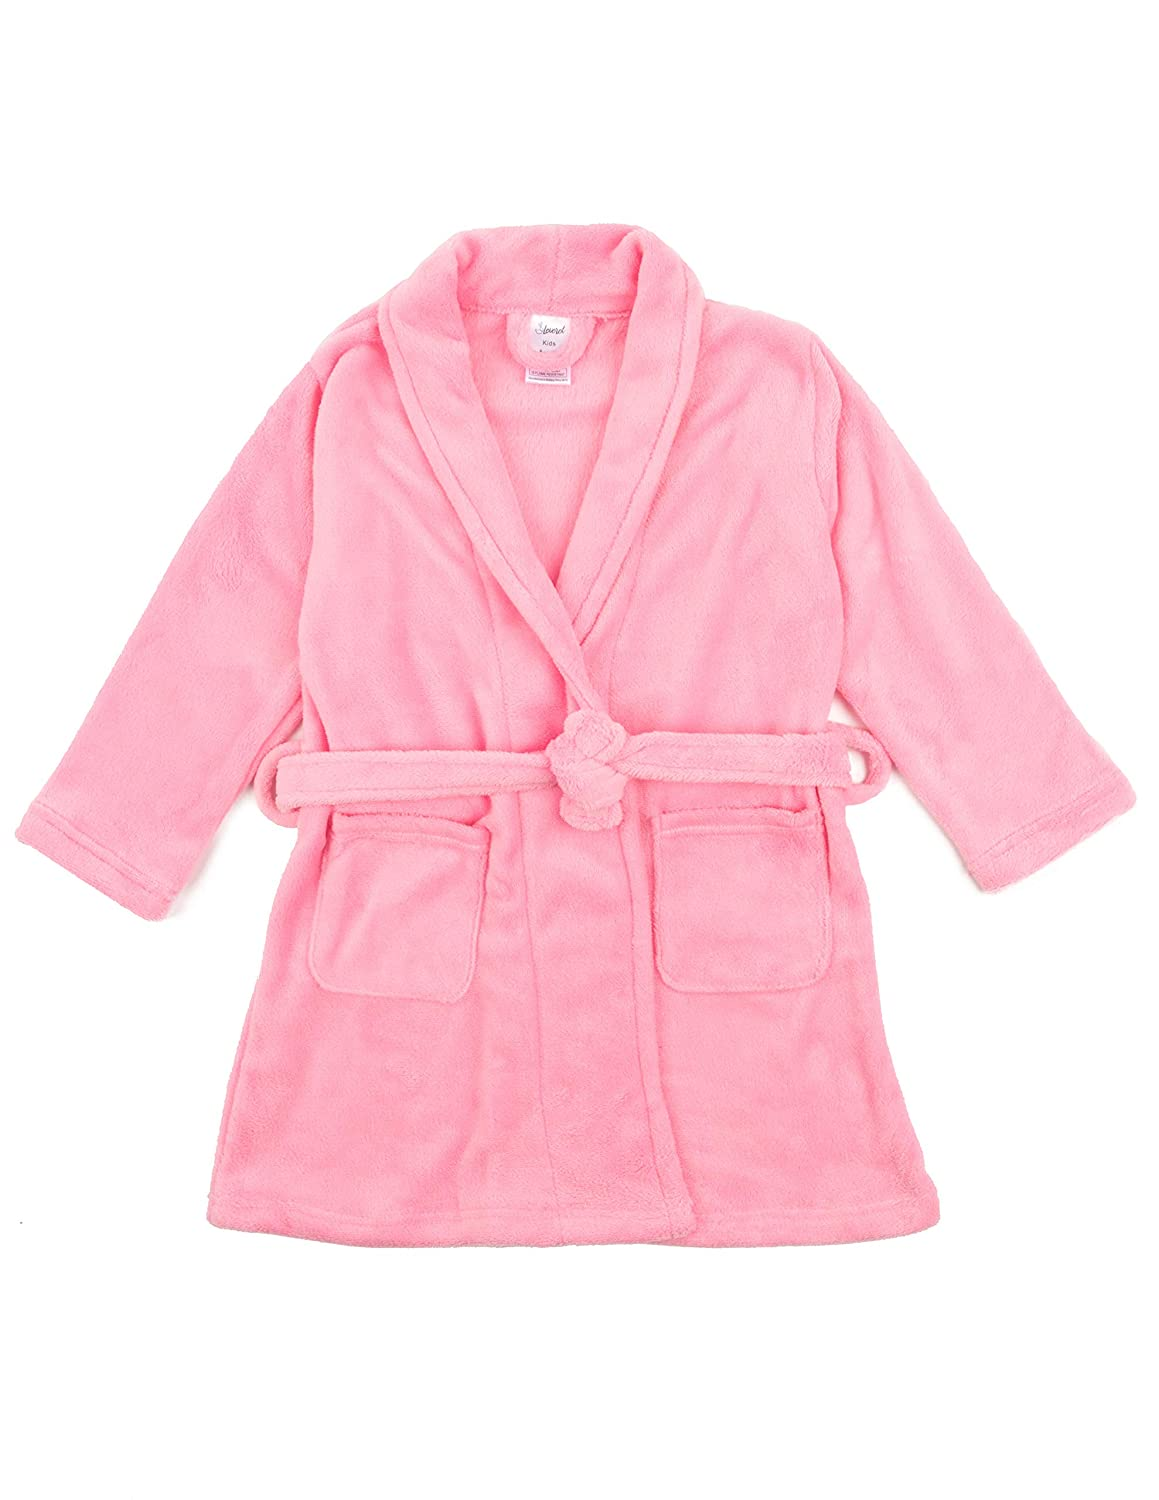 Leveret Kids Robe Boys Girls Shawl Collar Fleece Sleep Robe Size 4-14 Years Variety of Colors